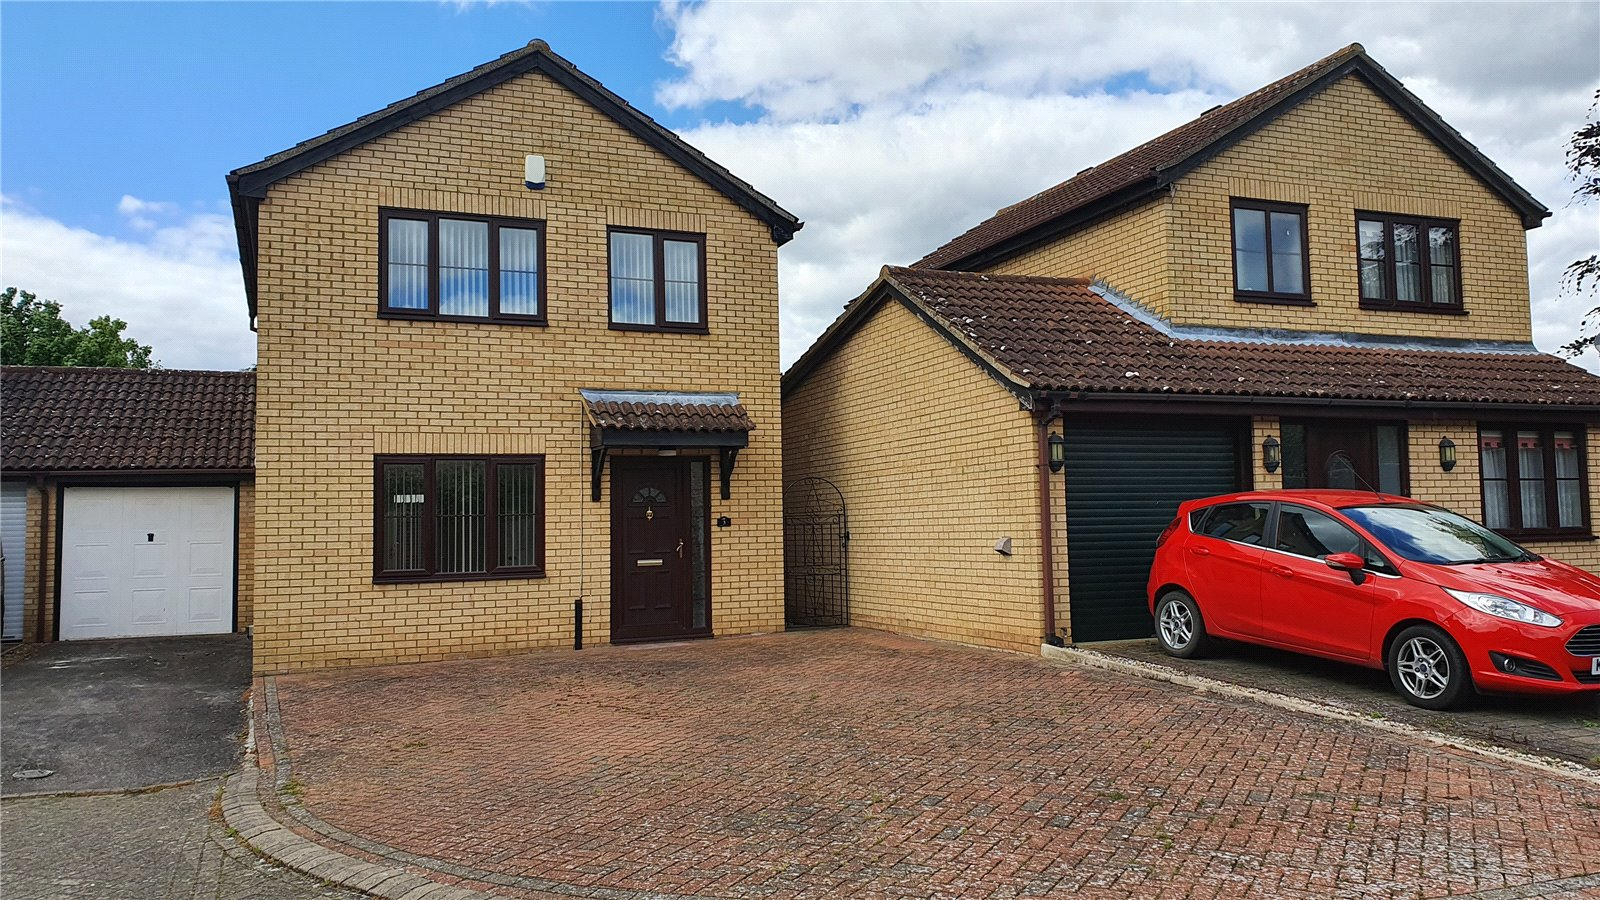 3 bed house for sale in Farm Close, Wyboston - Property Image 1